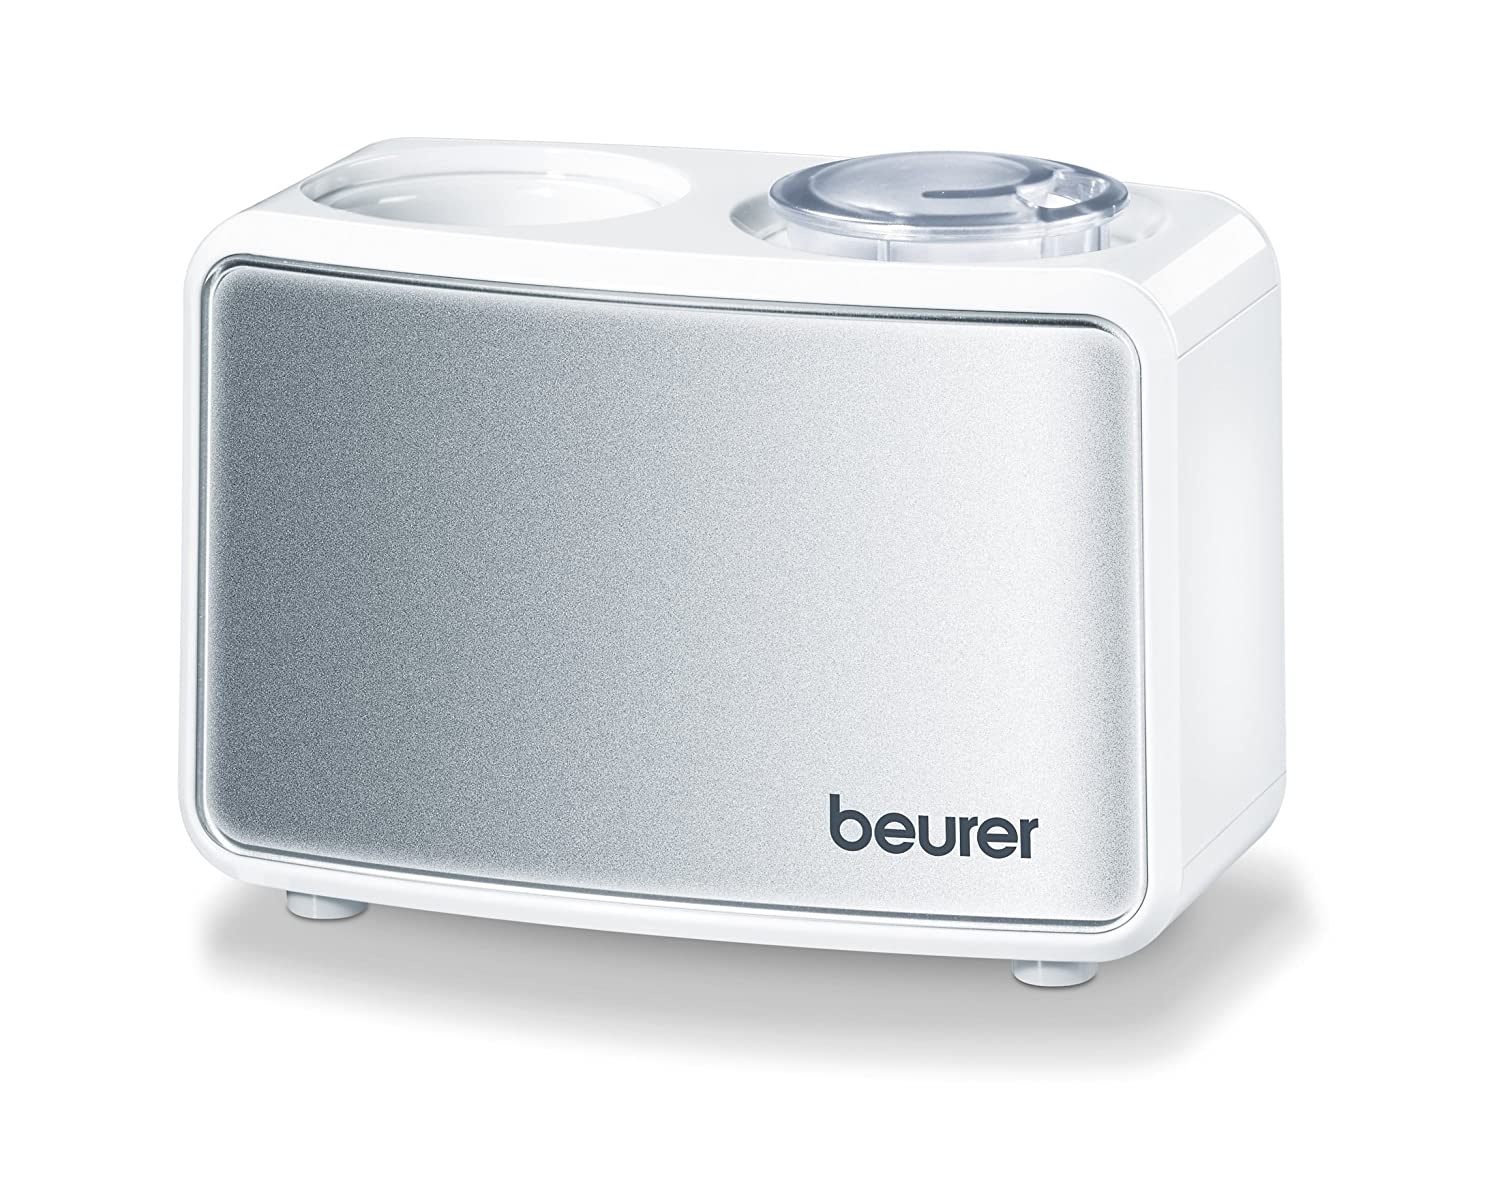 Beurer LB12 Mini Air Humidifier Ultrasonic Tech Quite, Ideal for ...